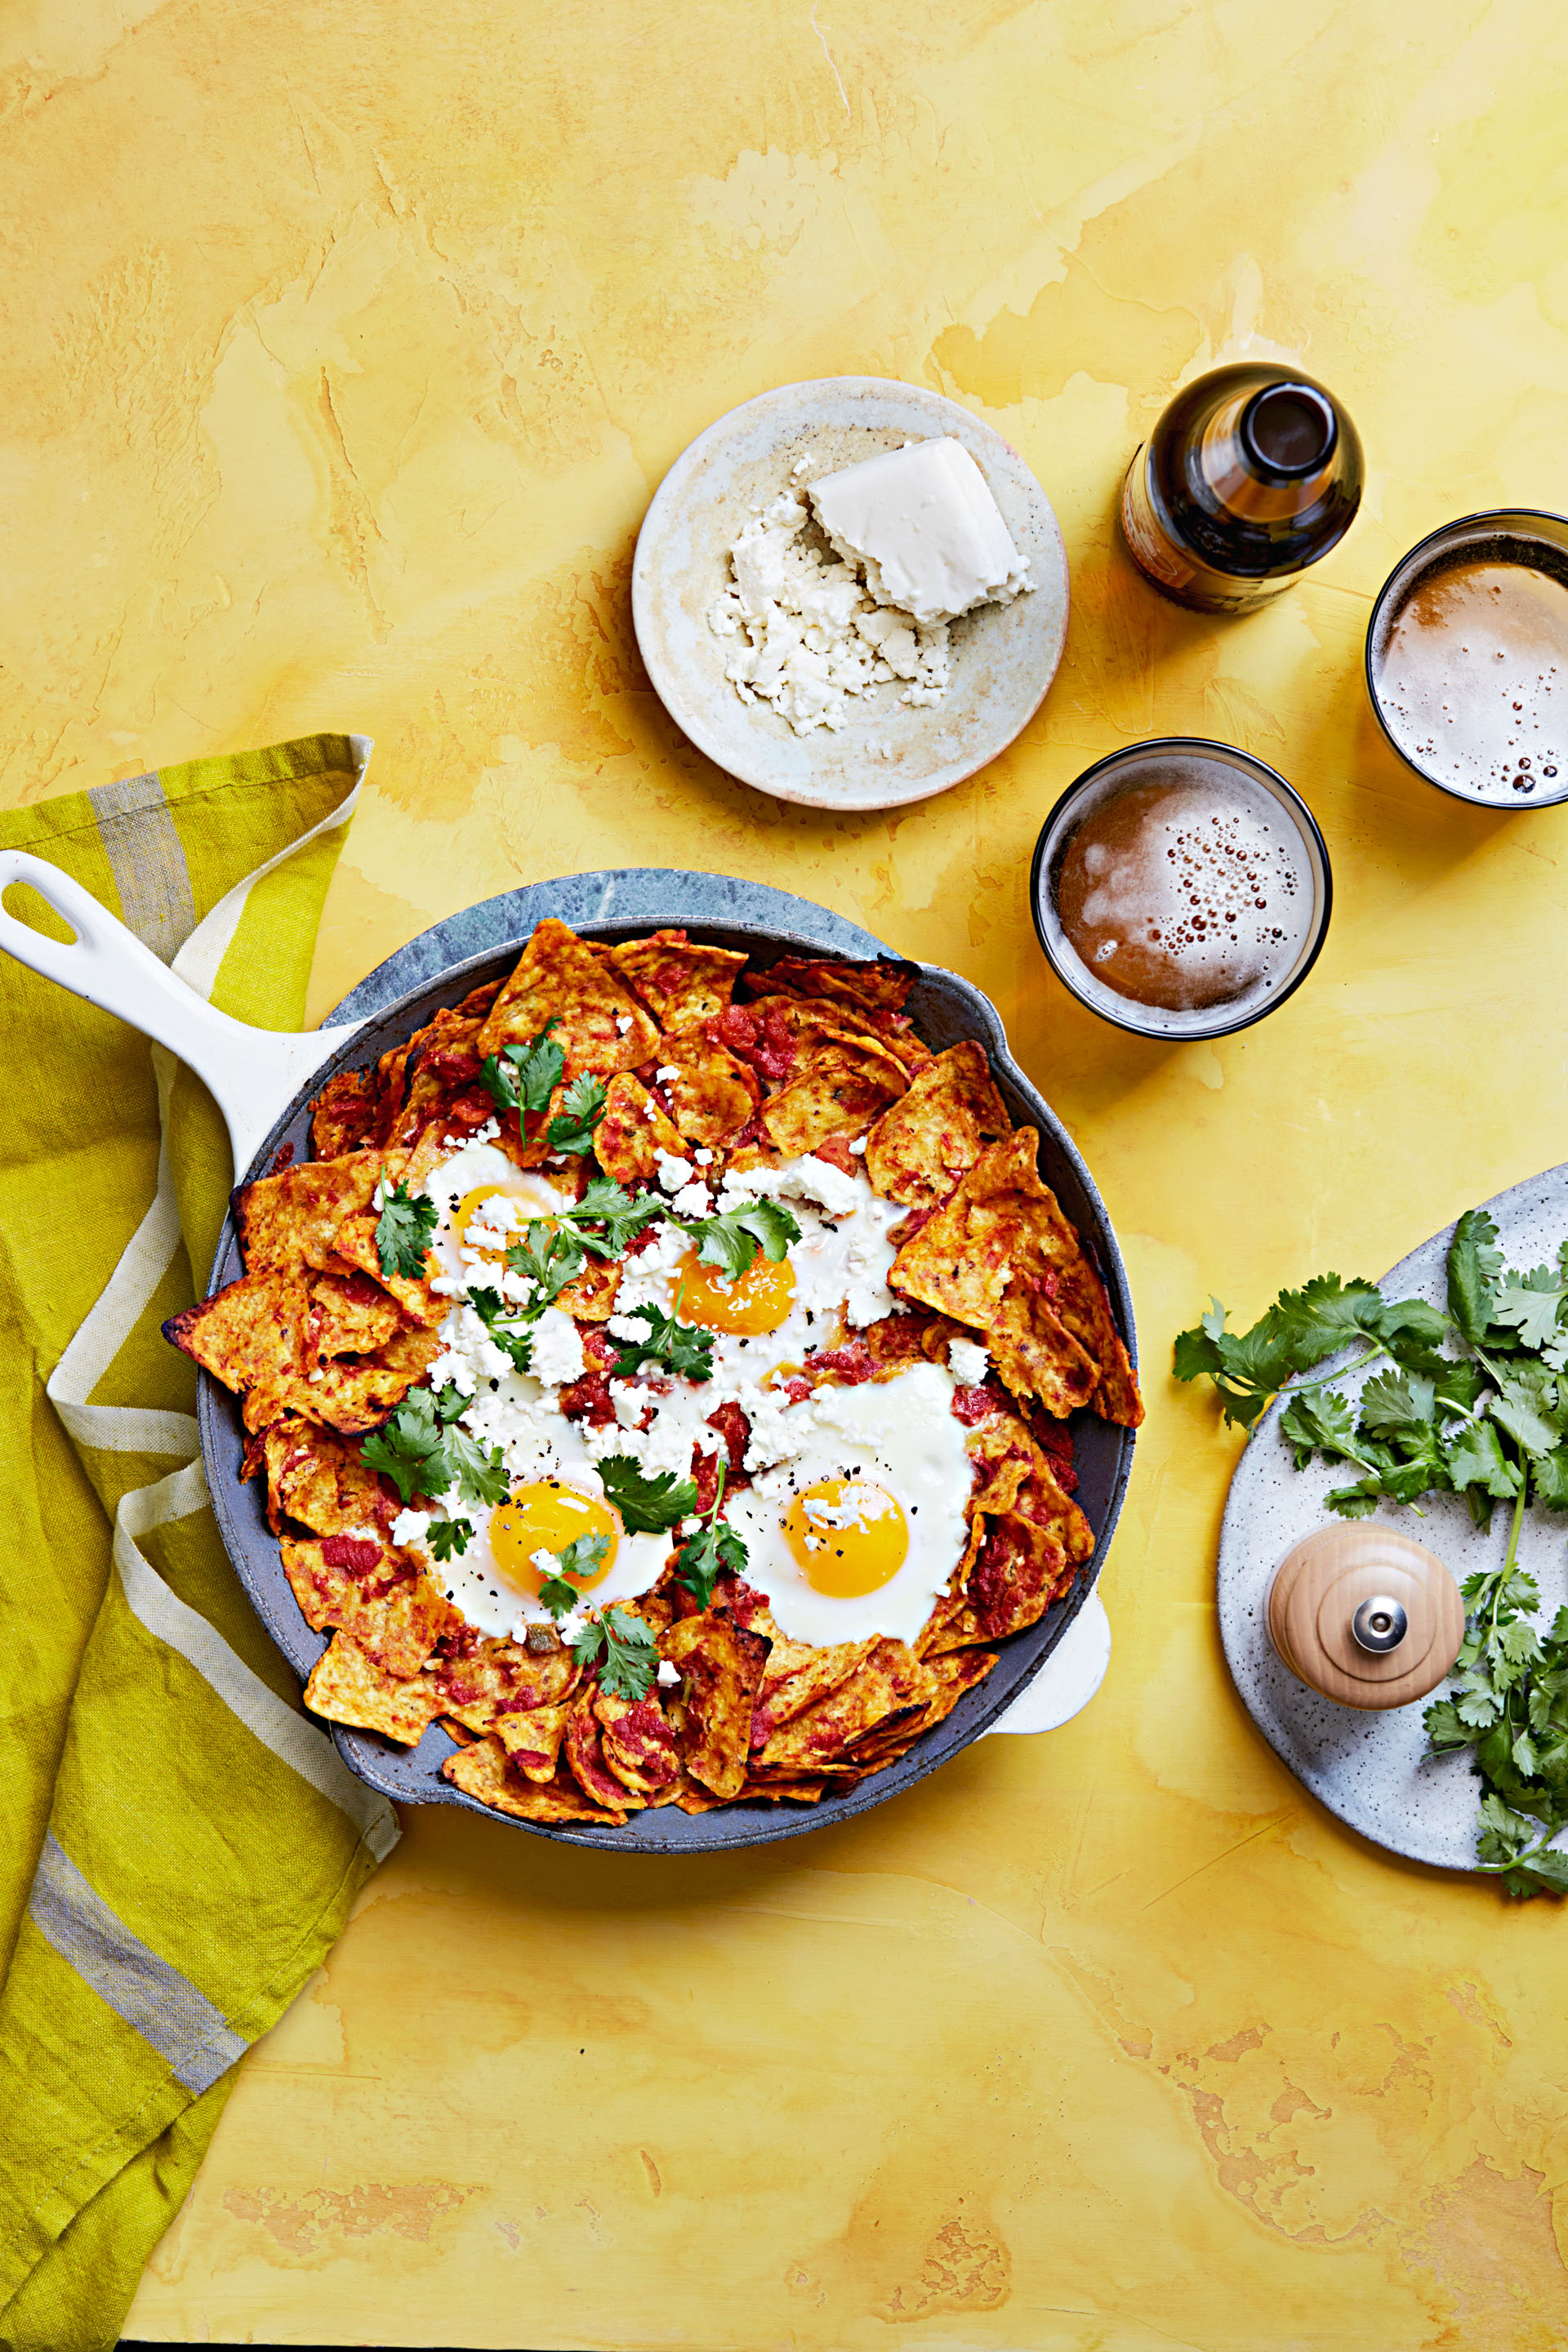 25 Quick and Satisfying Breakfast-for-Dinner Recipes